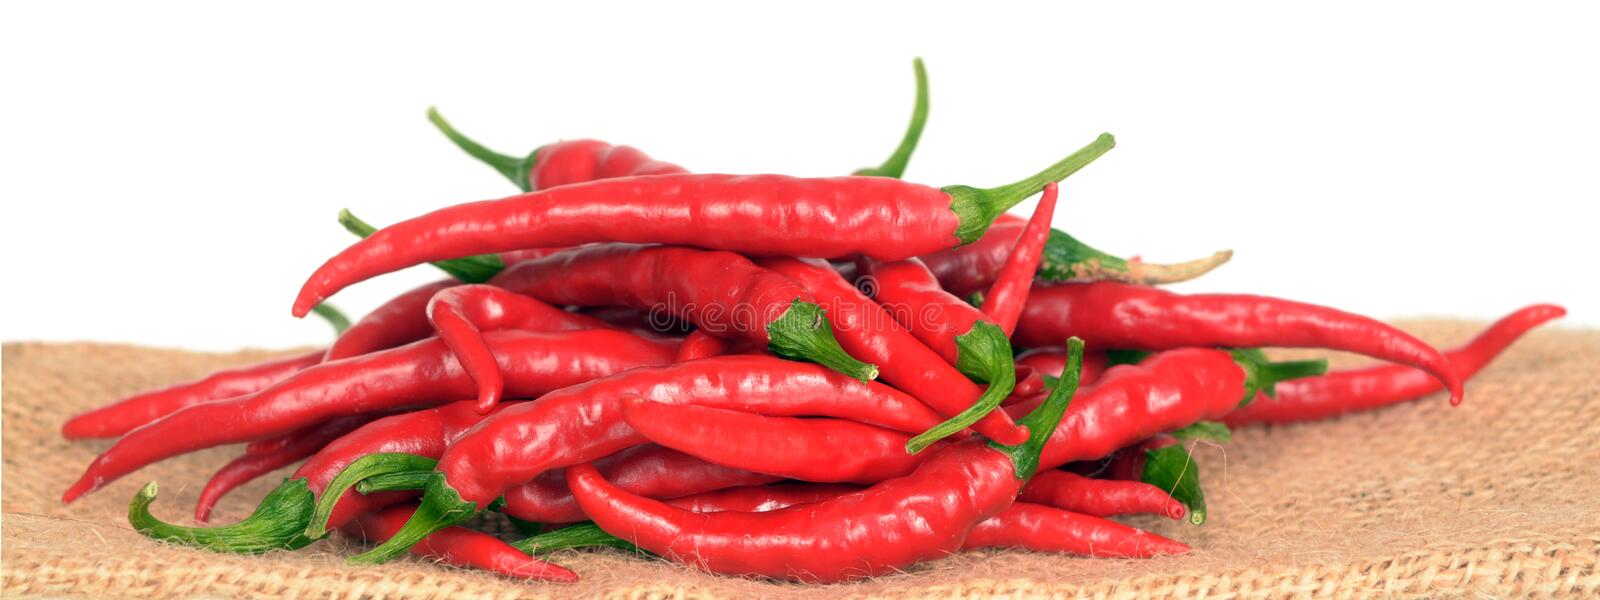 Cayenne pepper. Hot red cayenne pepper against white background royalty free stock images